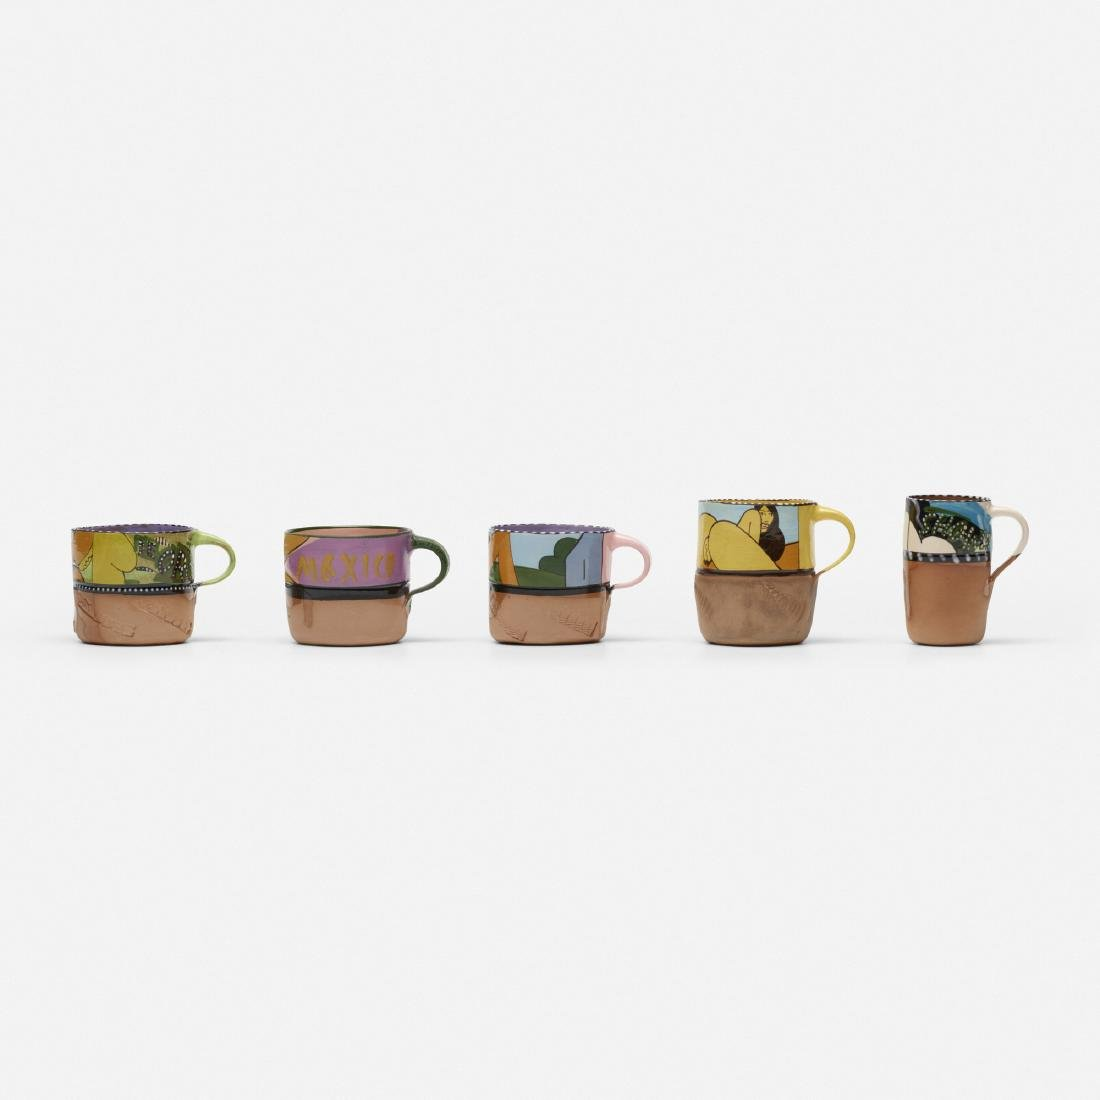 Ken Price, Erotic cups, set of five - 2